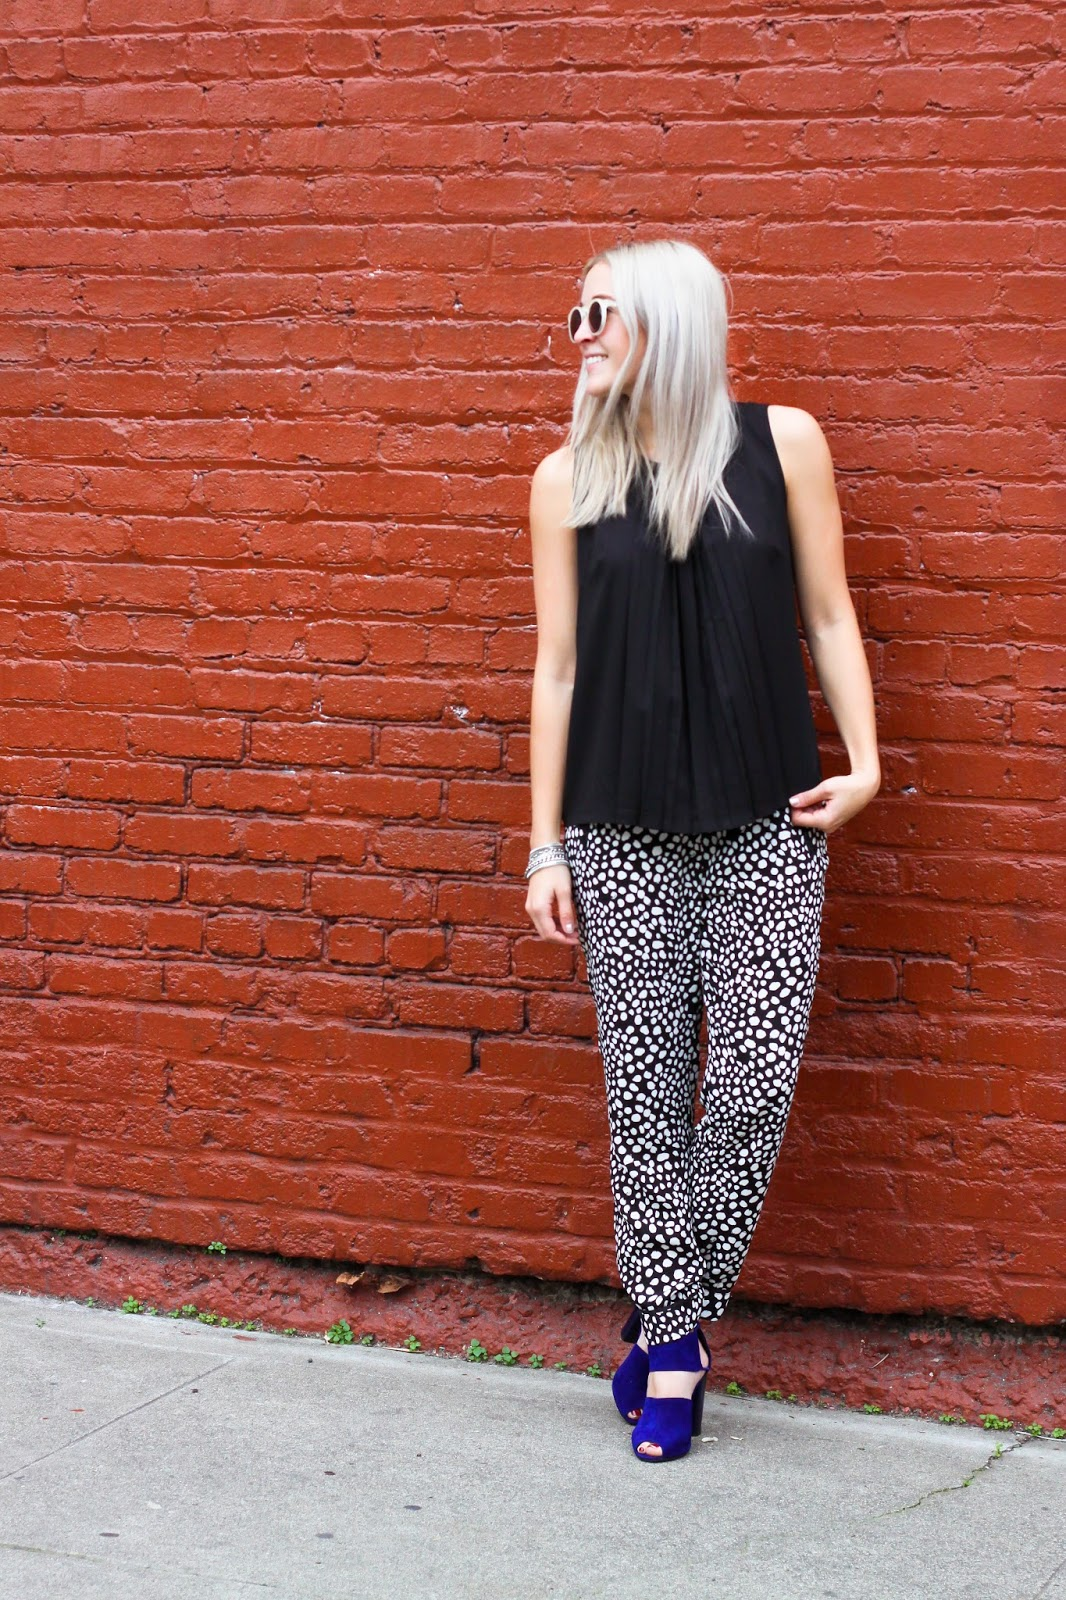 SF Blogger Stone Fox Style shows you how to wear patterned pajama trousers